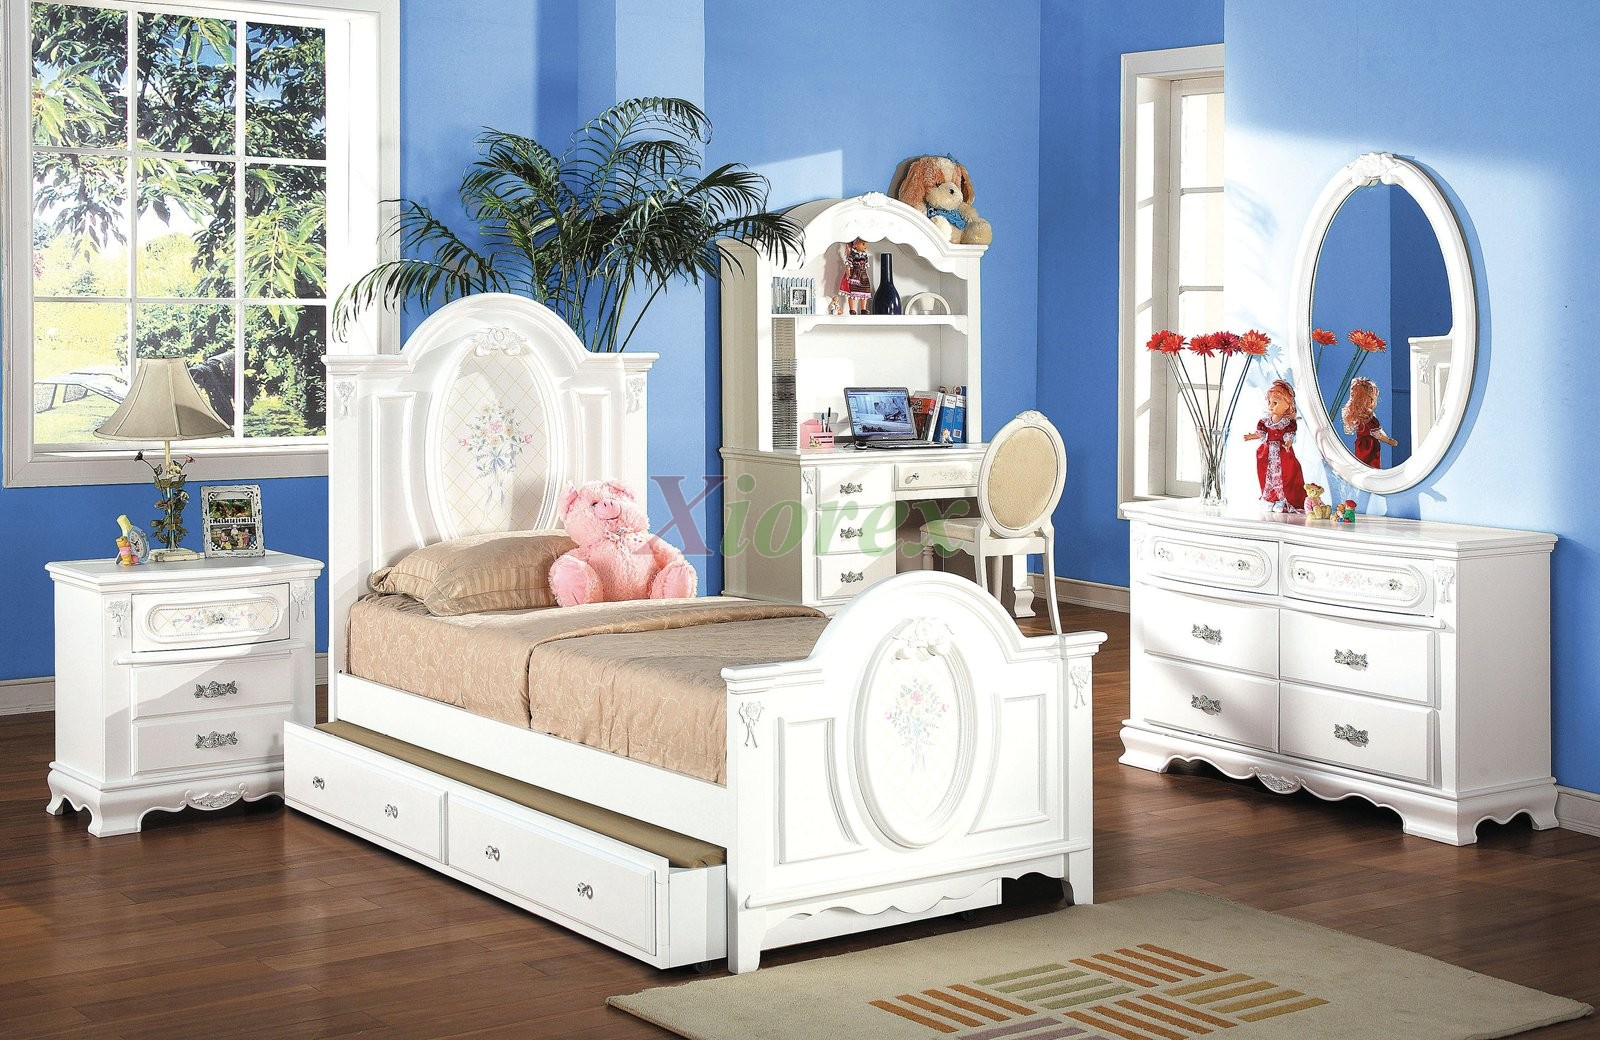 Youth Bedroom Furniture | Kids Bedroom Furniture Set With Trundle Bed And Hutch 174 Xiorex